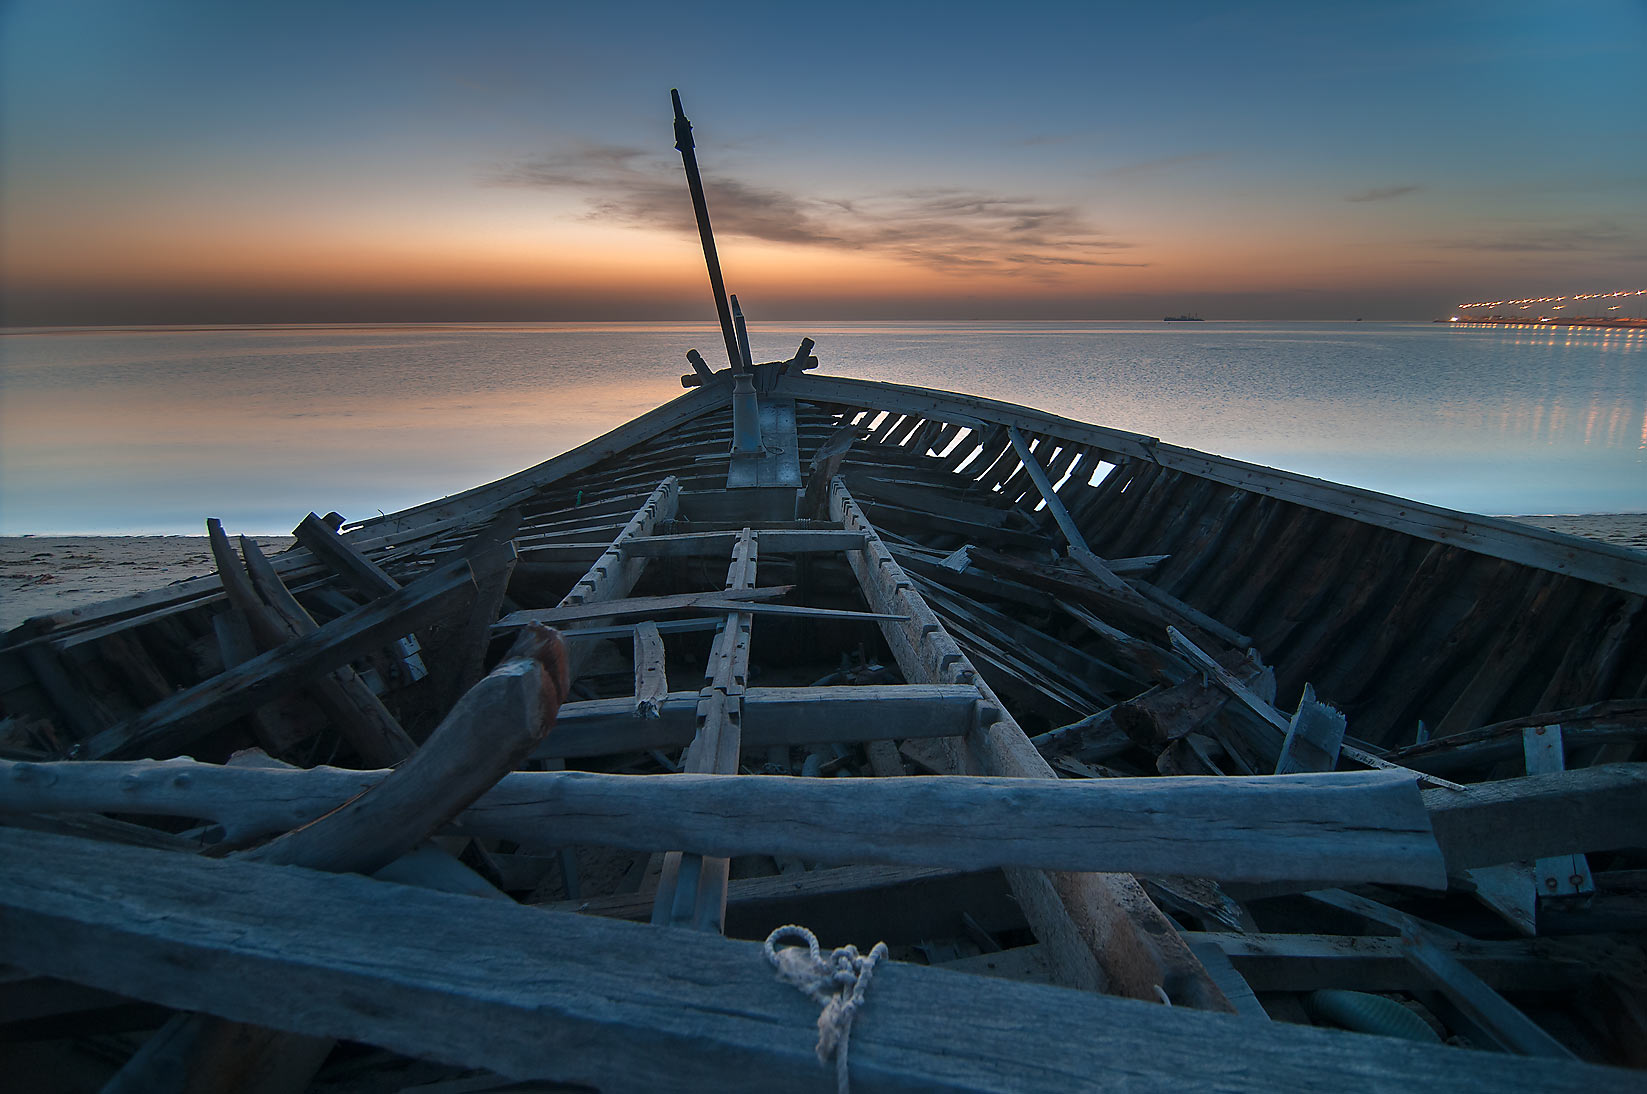 Beached fishing boat in Al Wakra at morning dusk. Qatar